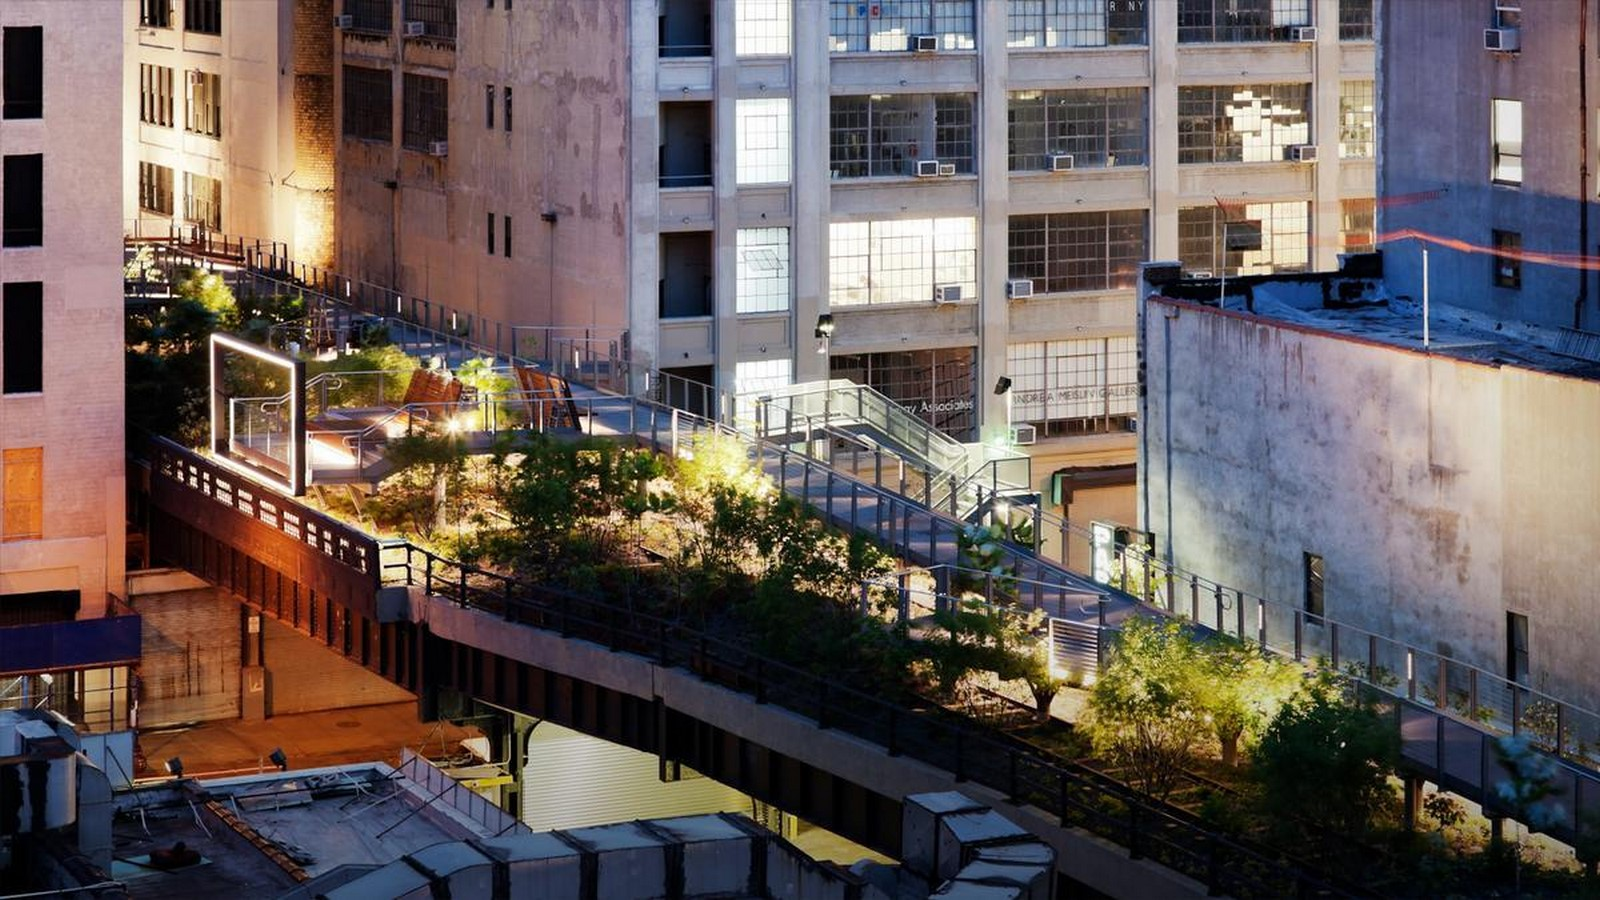 TedTalks for Architects: A stealthy reimagining of urban public space by Elizabeth Diller - Sheet1